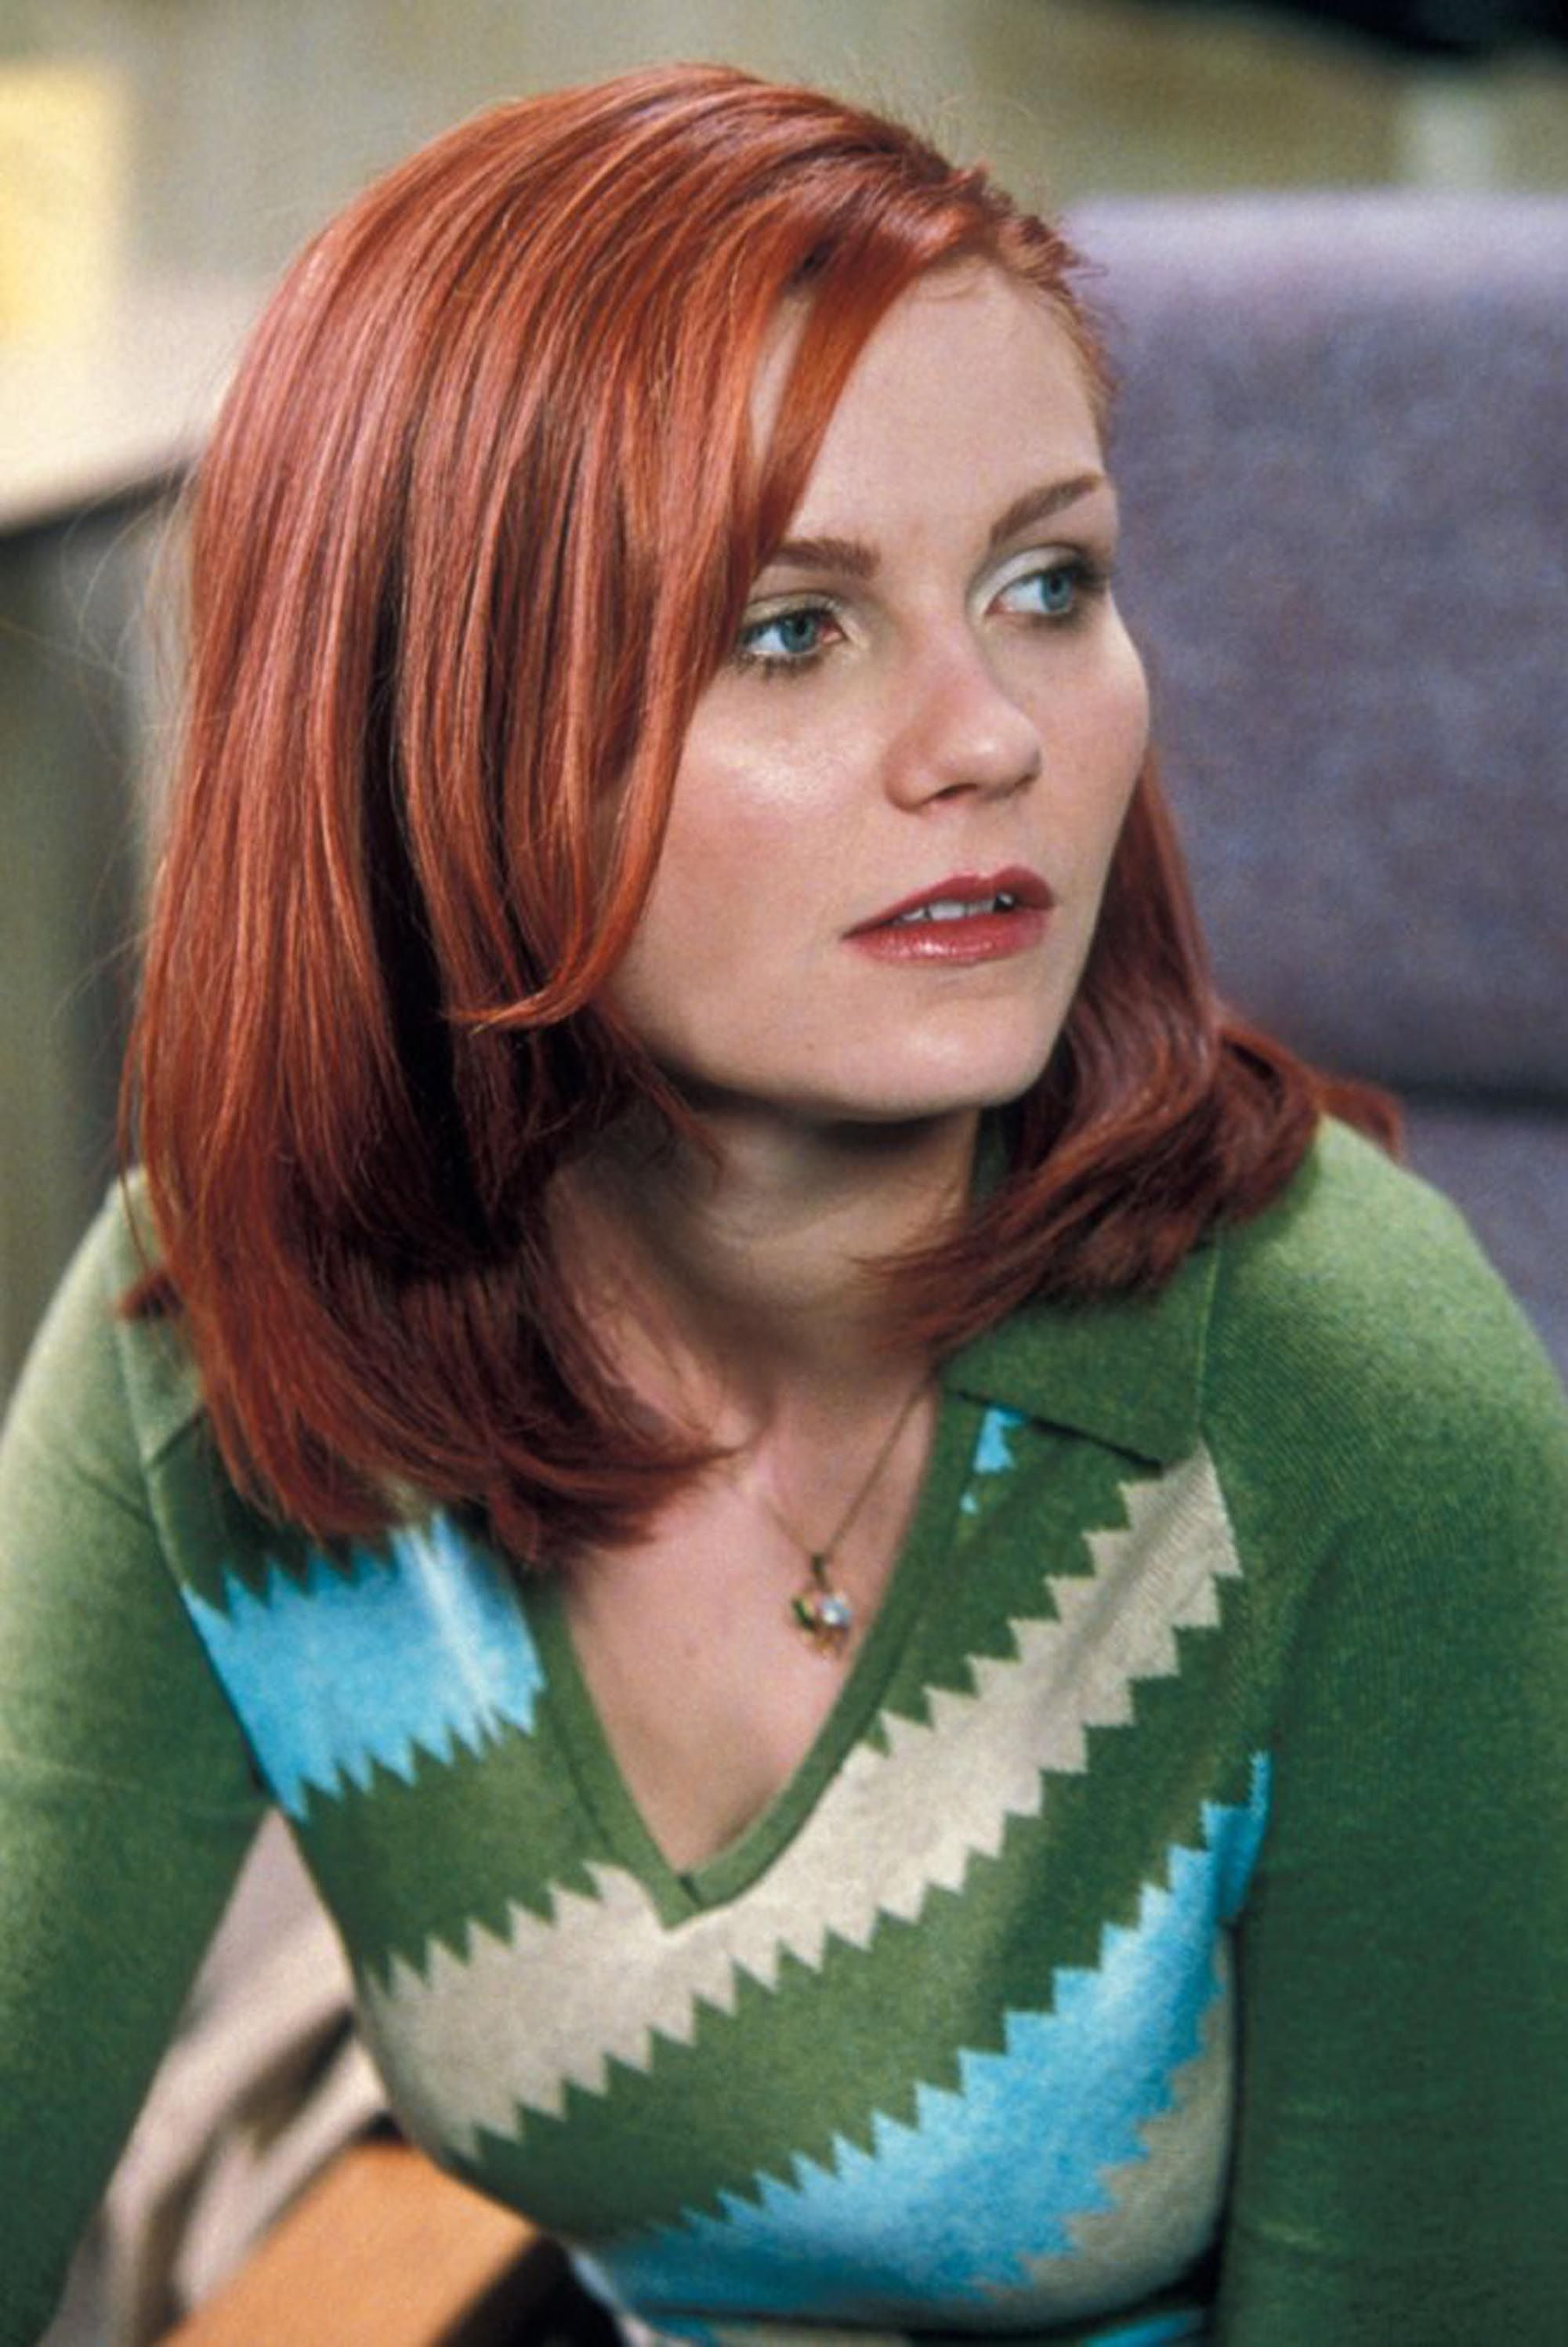 kirsten dunst as mary jane watson - spider-man | women of science